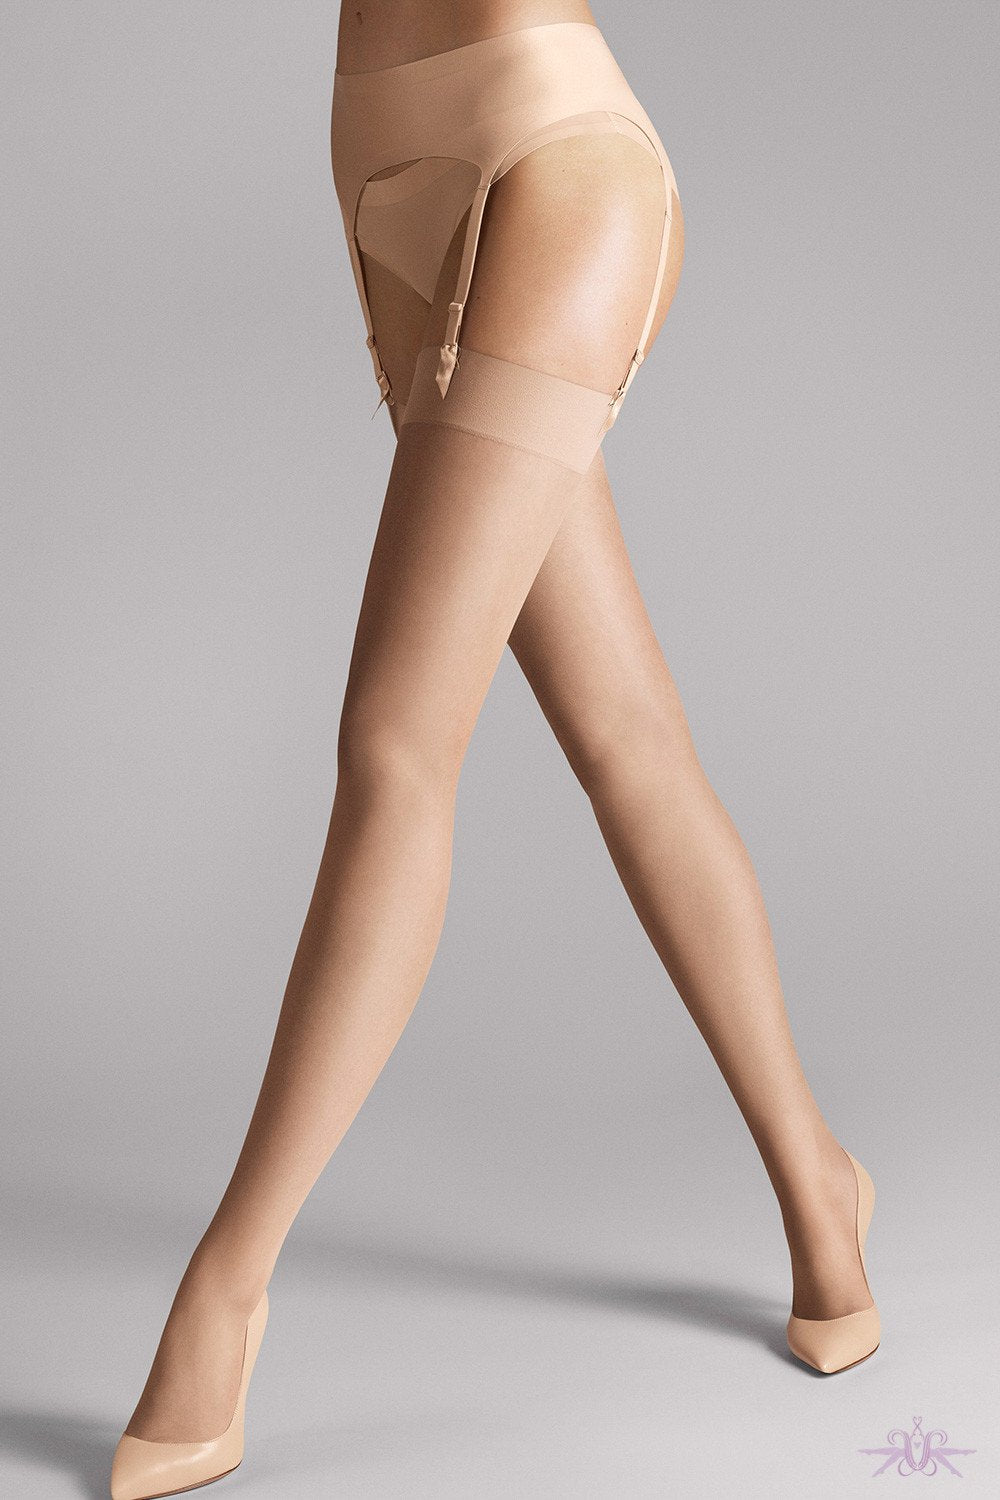 Wolford Individual 10 Stockings - Mayfair Stockings